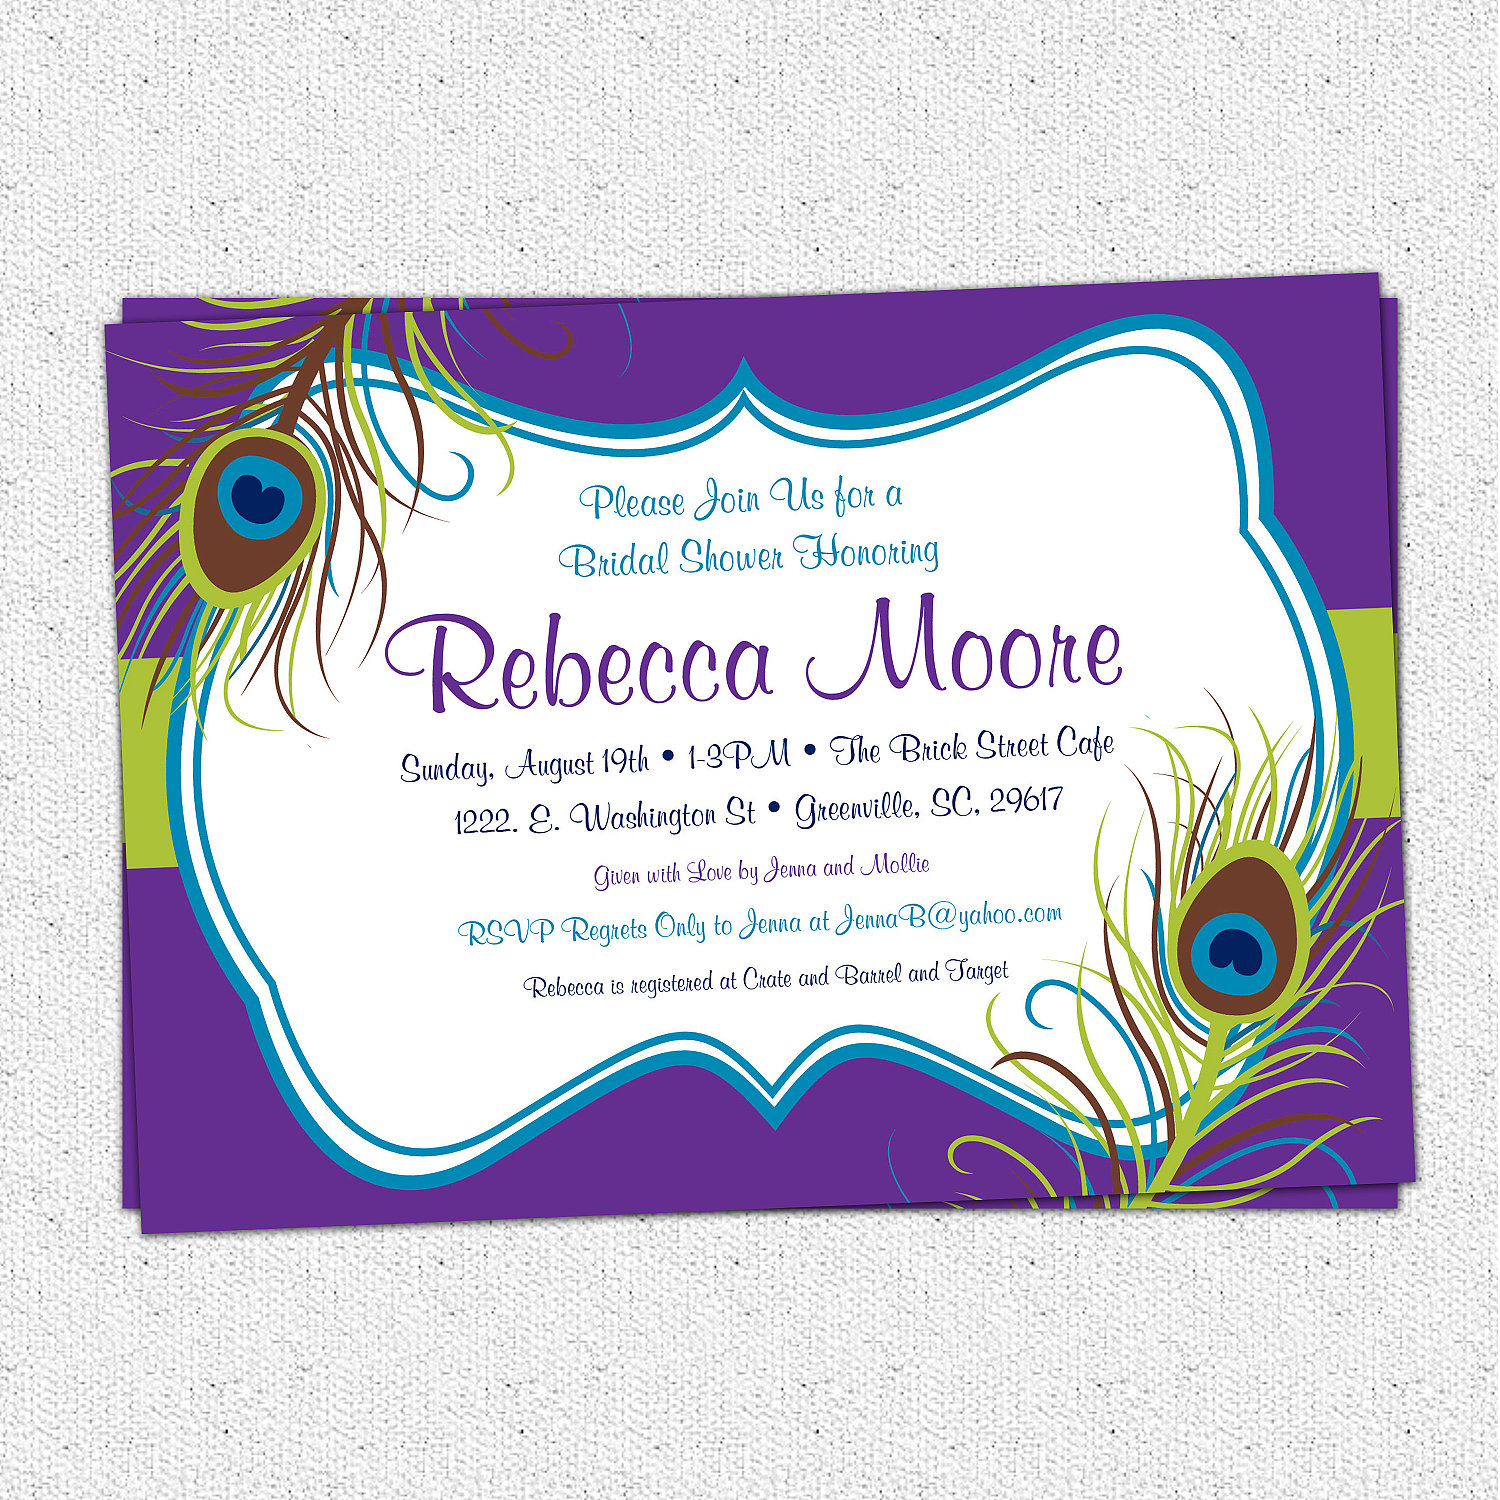 Peacock feather invitations bridal shower baby shower birthday or peacock feather invitations bridal shower baby shower birthday or engagement party elegant filmwisefo